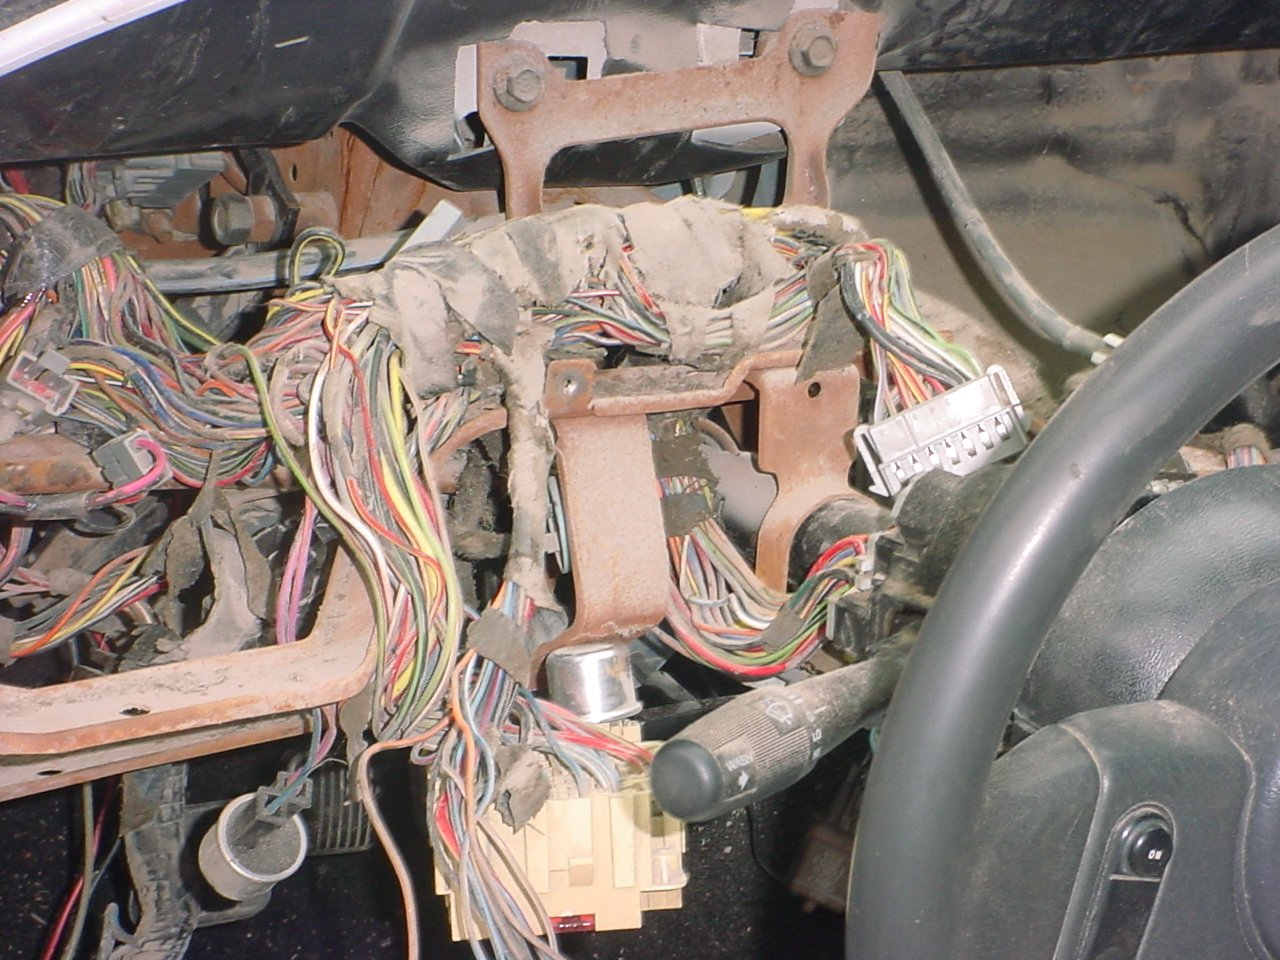 12808d1134269196 underdash wiring diagram dsc01663 underdash wiring diagram ford mustang forum  at nearapp.co